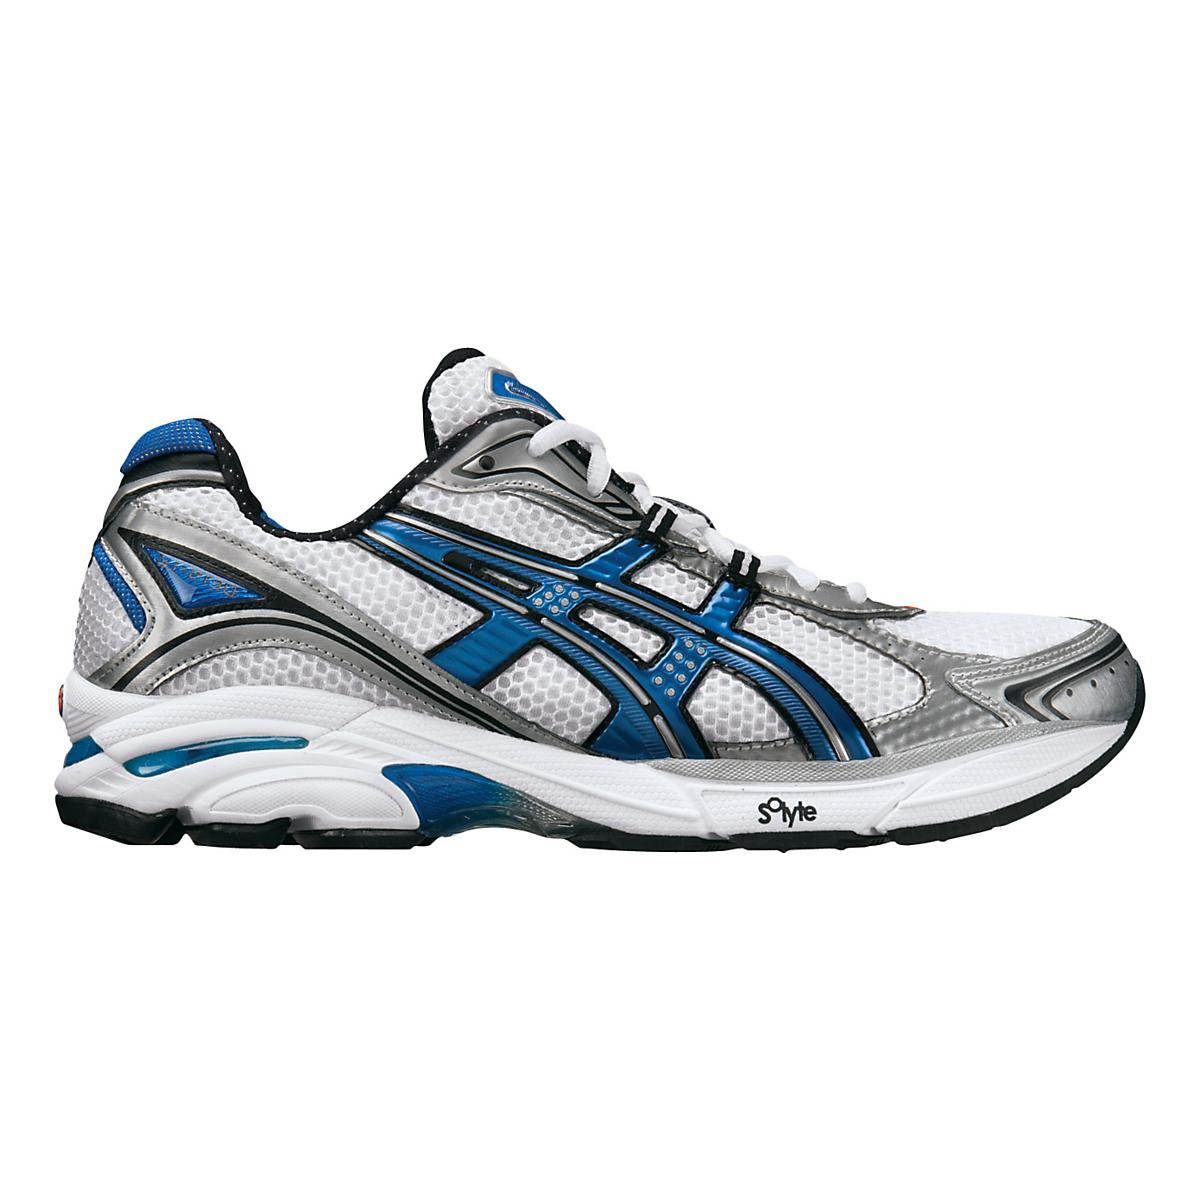 Mens ASICS GT-2130 Running Shoe at Road Runner Sports caf5418678